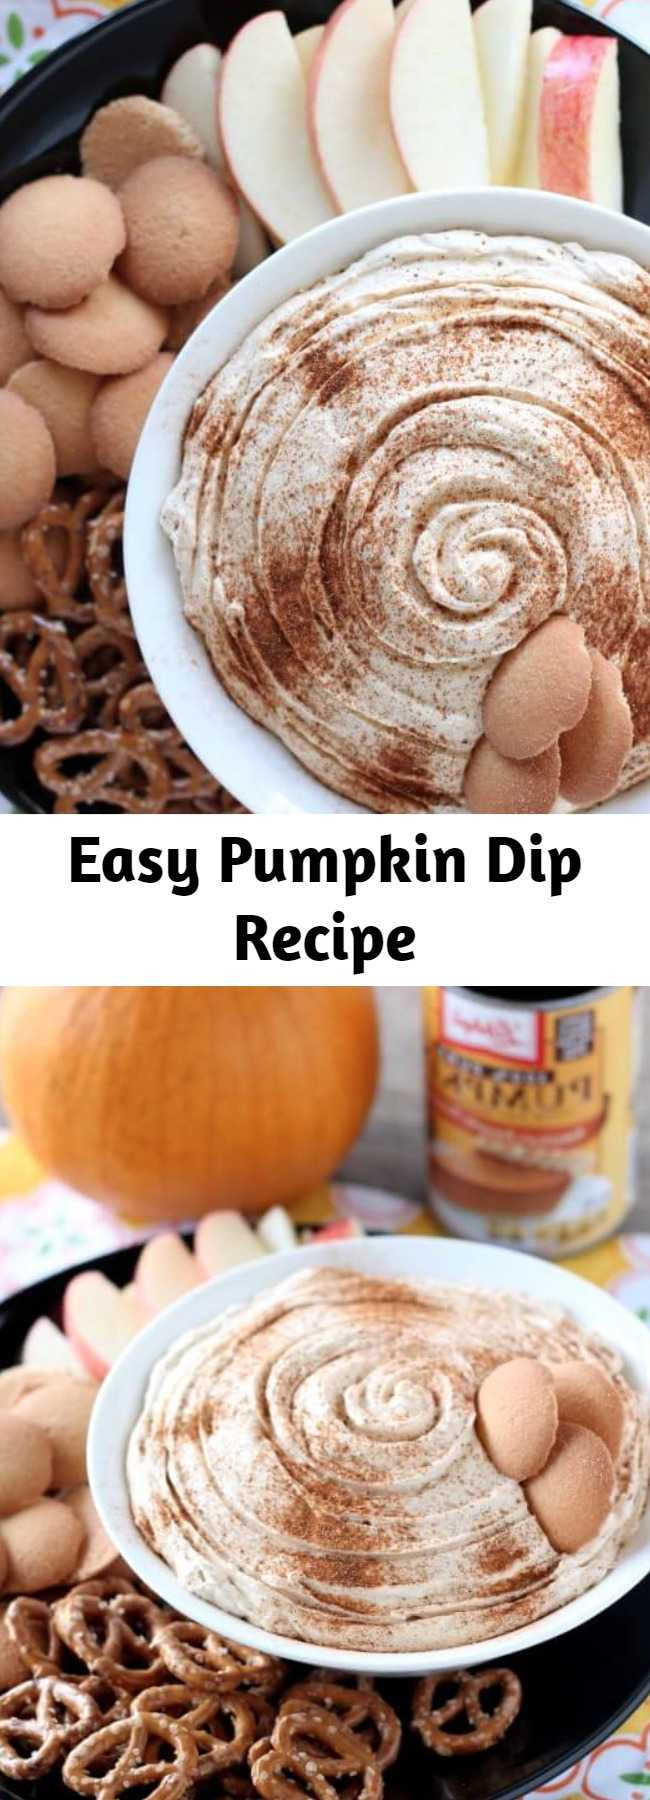 Easy Pumpkin Dip Recipe - This Pumpkin Dip is one everyone can enjoy with their favorite cookie, pretzel, or fruit! Plus, it's no-bake so it's easy!